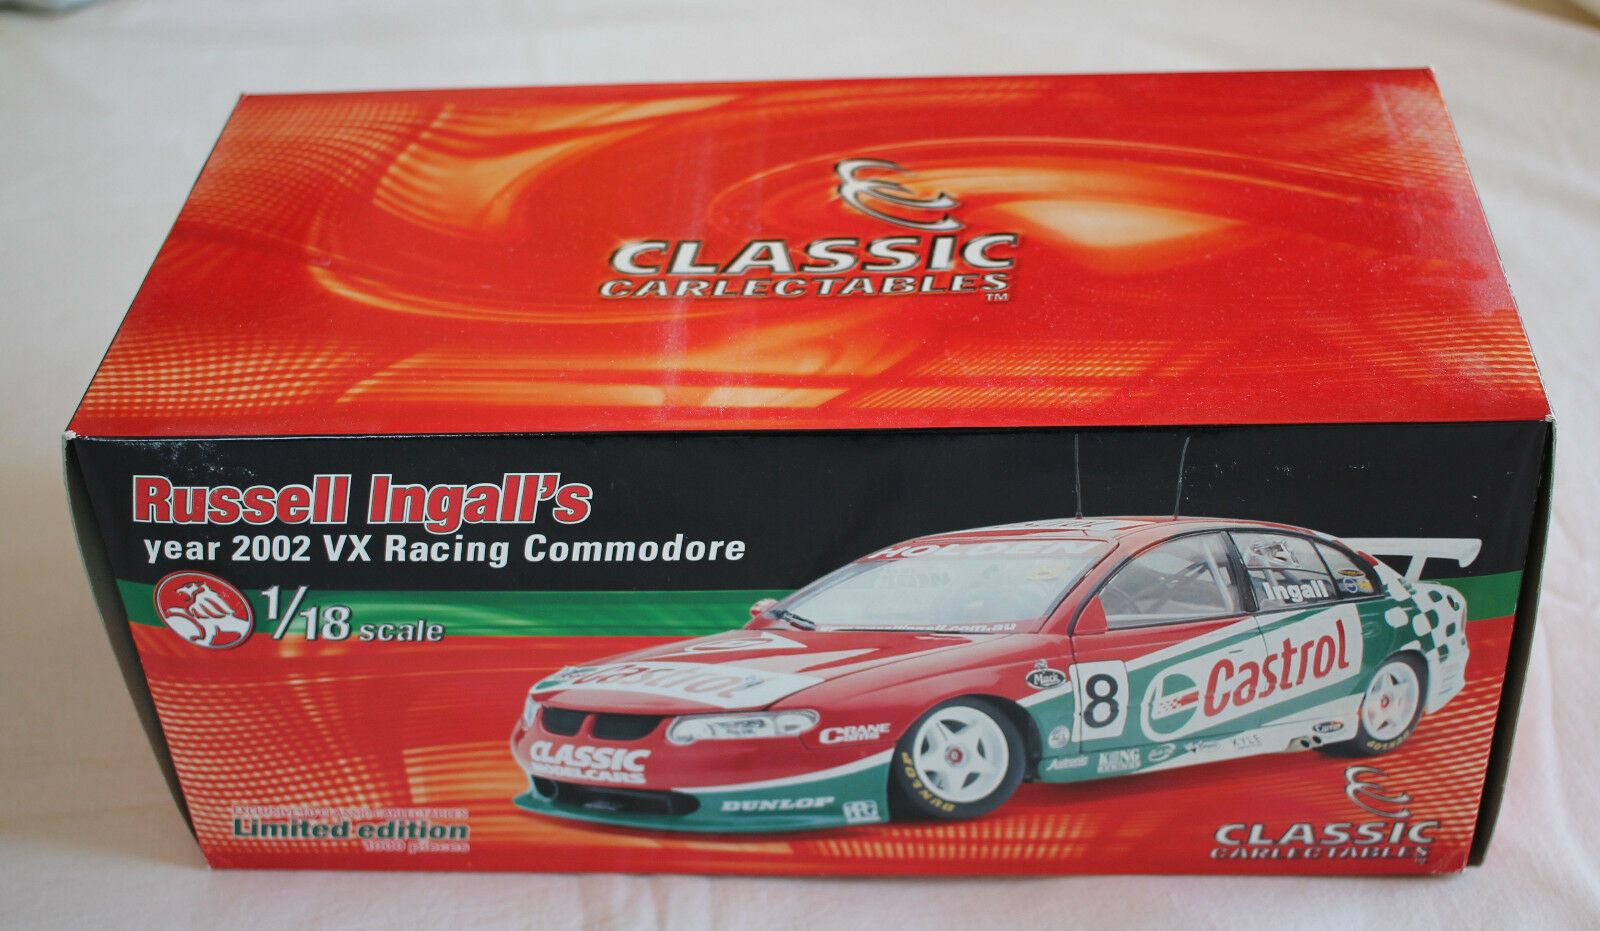 Russell ingall 2002 castrol perkins racing holden commodore v8 supercar 1,18 vx